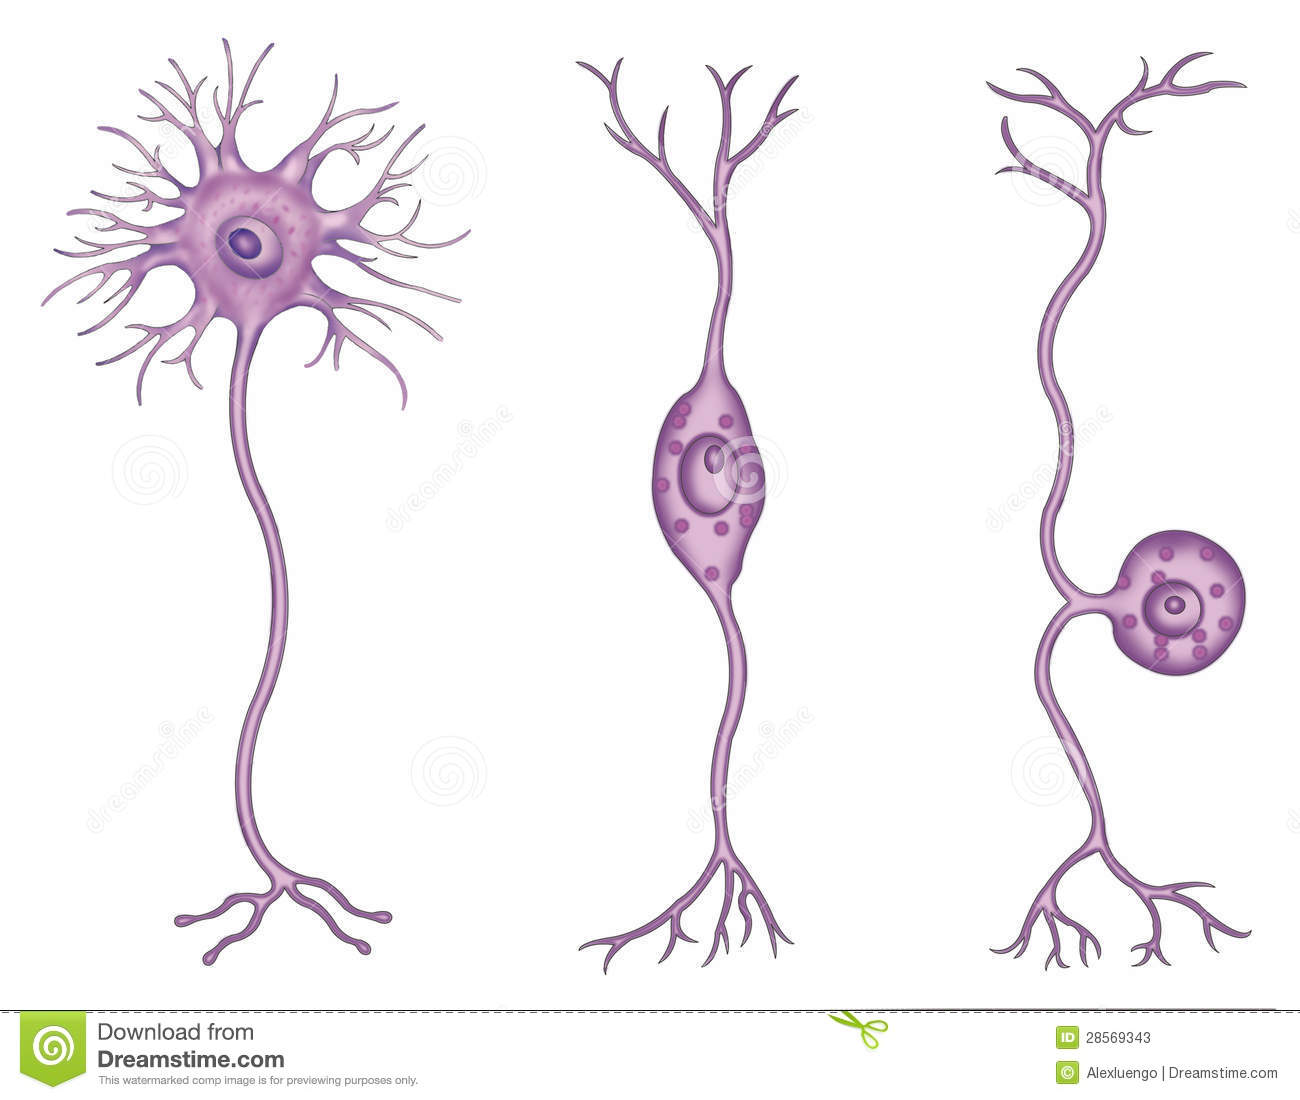 Types Of Neurons Stock Photos - Image: 28569343